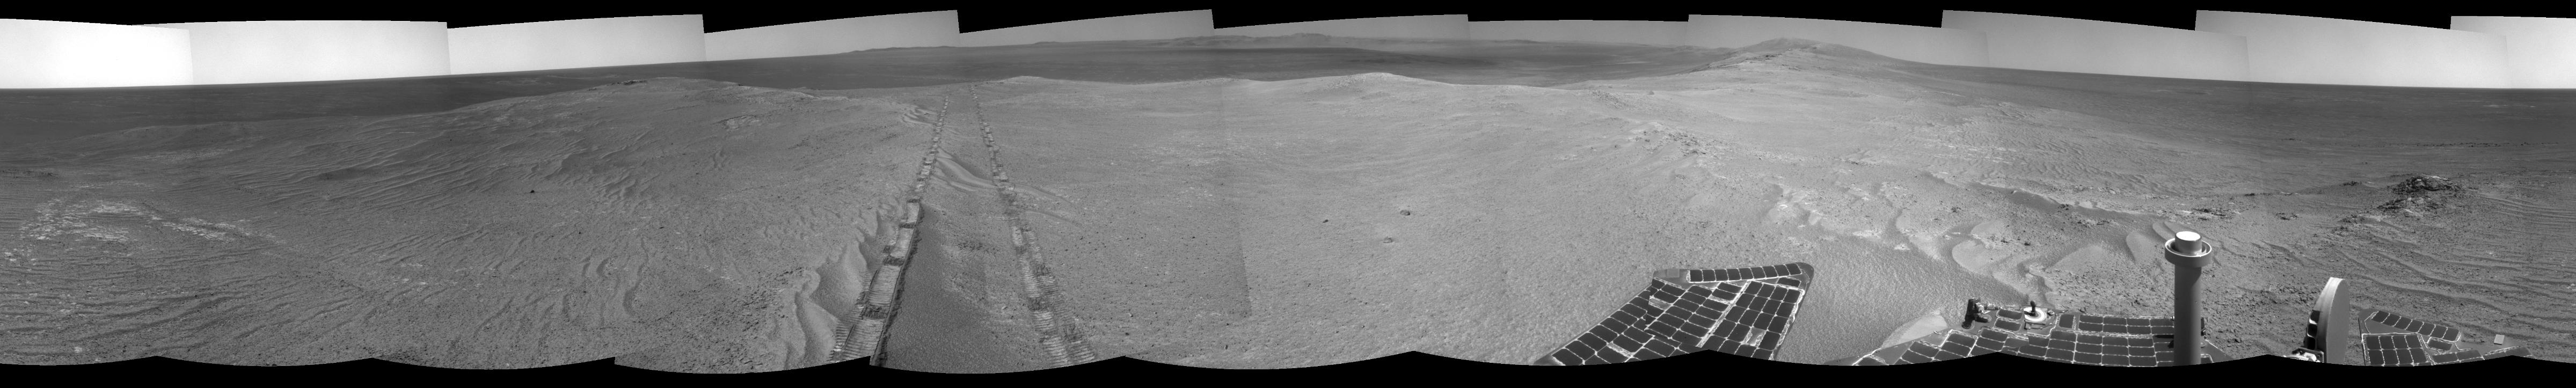 The component images for this 360-degree panorama were taken by the navigation camera on NASA's Mars Exploration Rover Opportunity after the rover drove about 97 feet southeastward on April 22, 2014. The location is on the western rim of Endeavour Crater. The two parallel tracks are 3.3 feet apart.